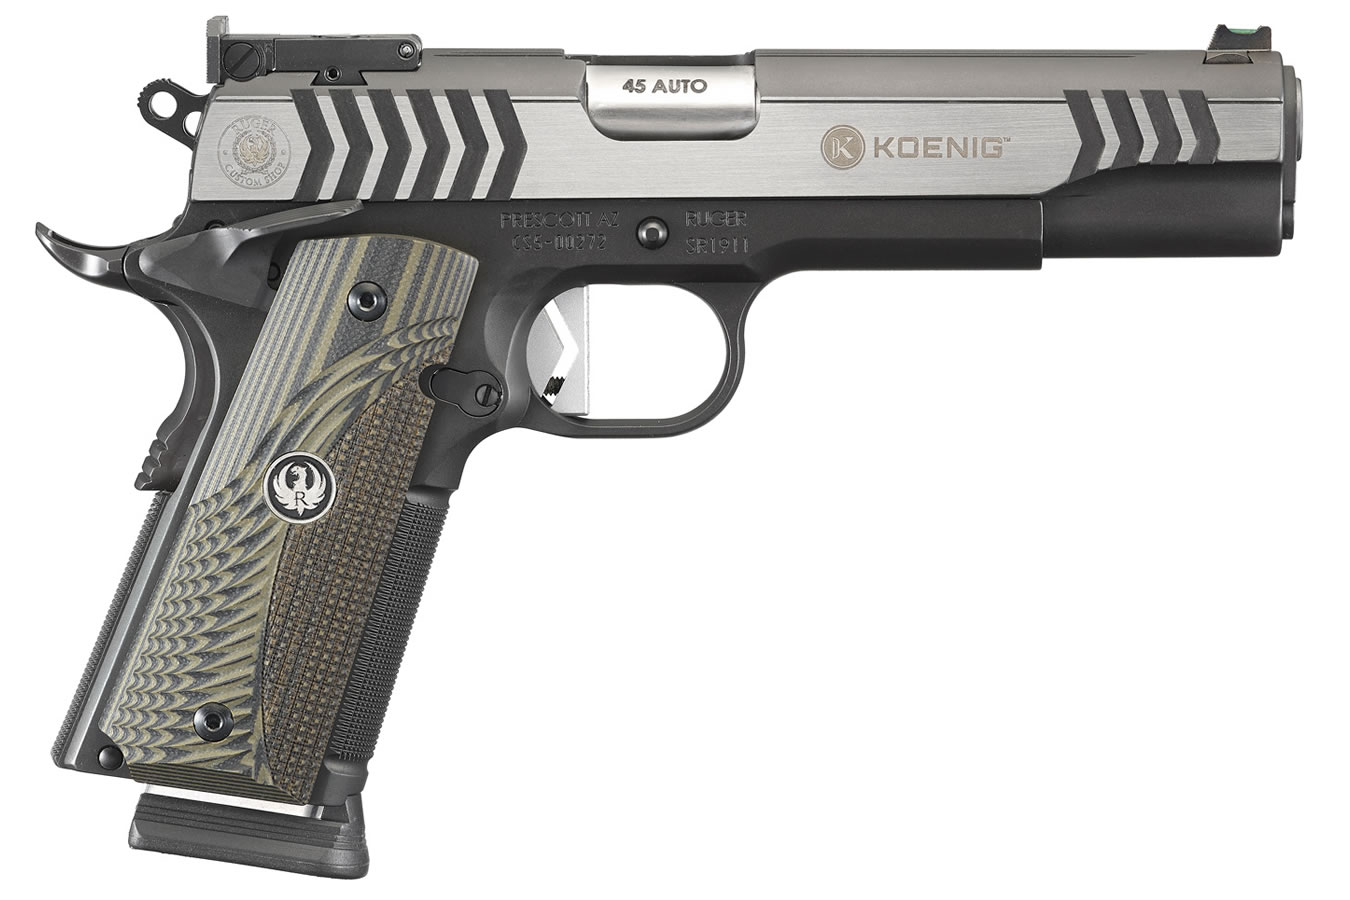 No. 4 Best Selling: RUGER SR1911 COMPETITION 45 AUTO